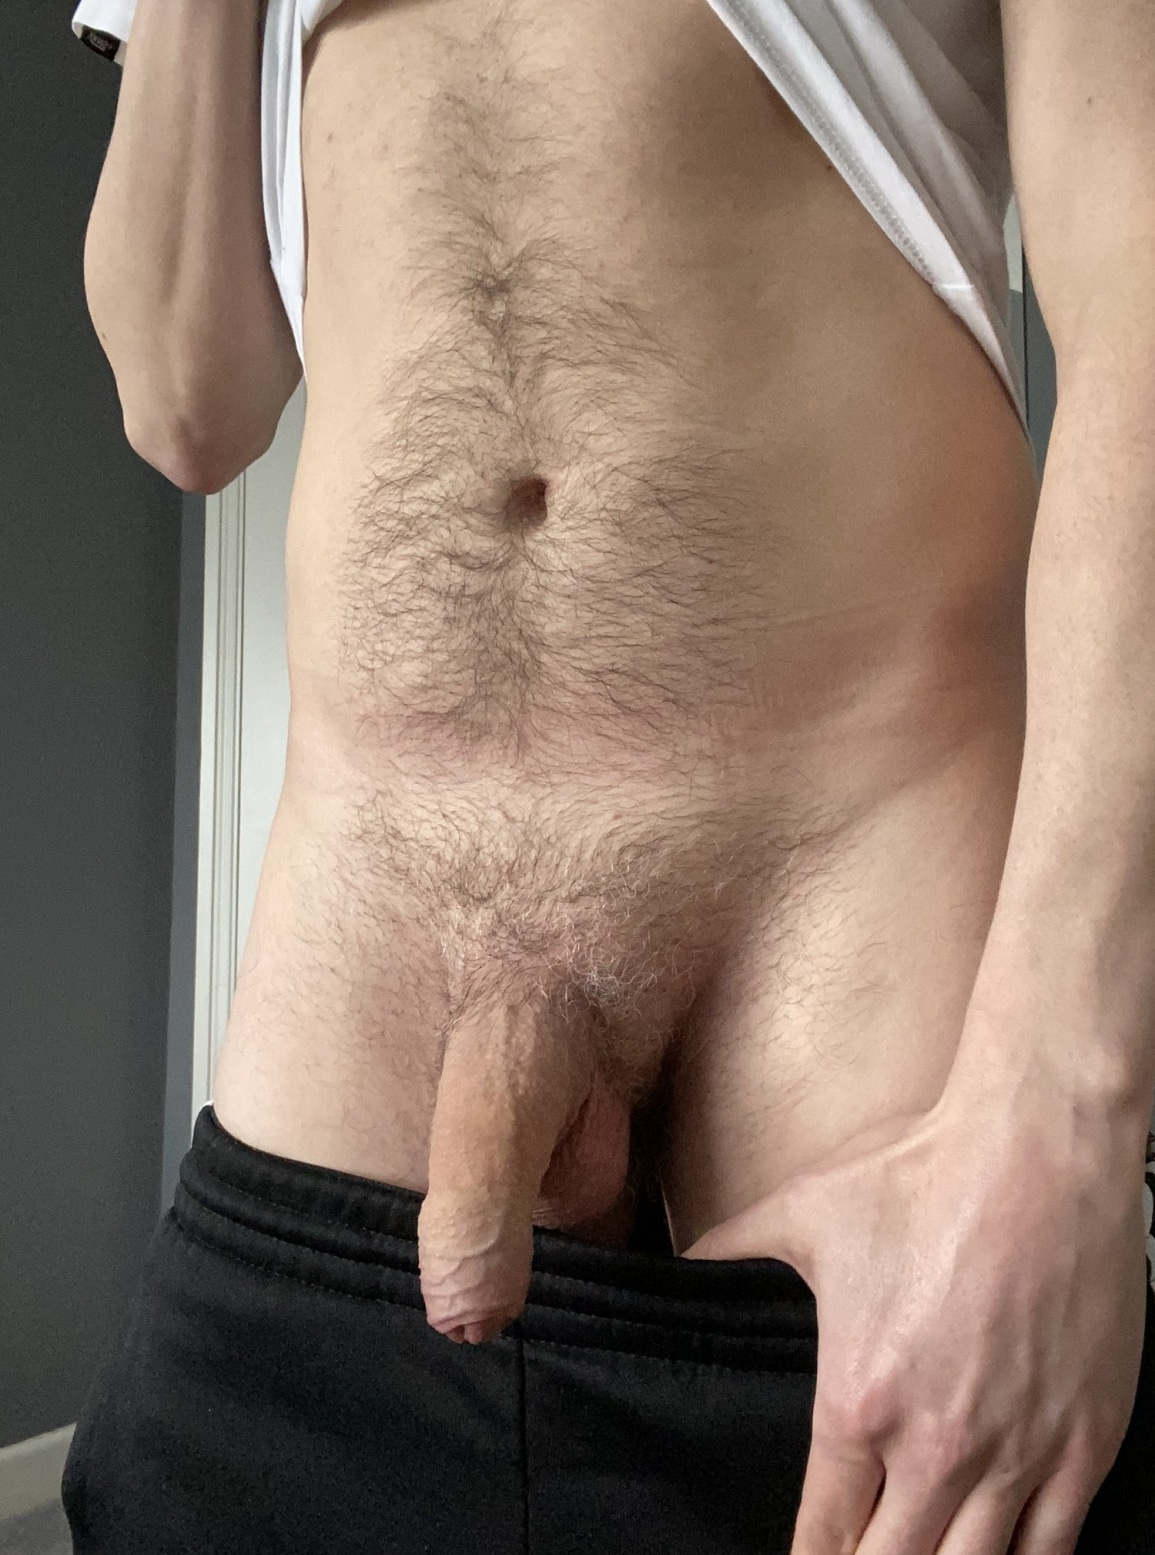 Hairy tummy and soft cock